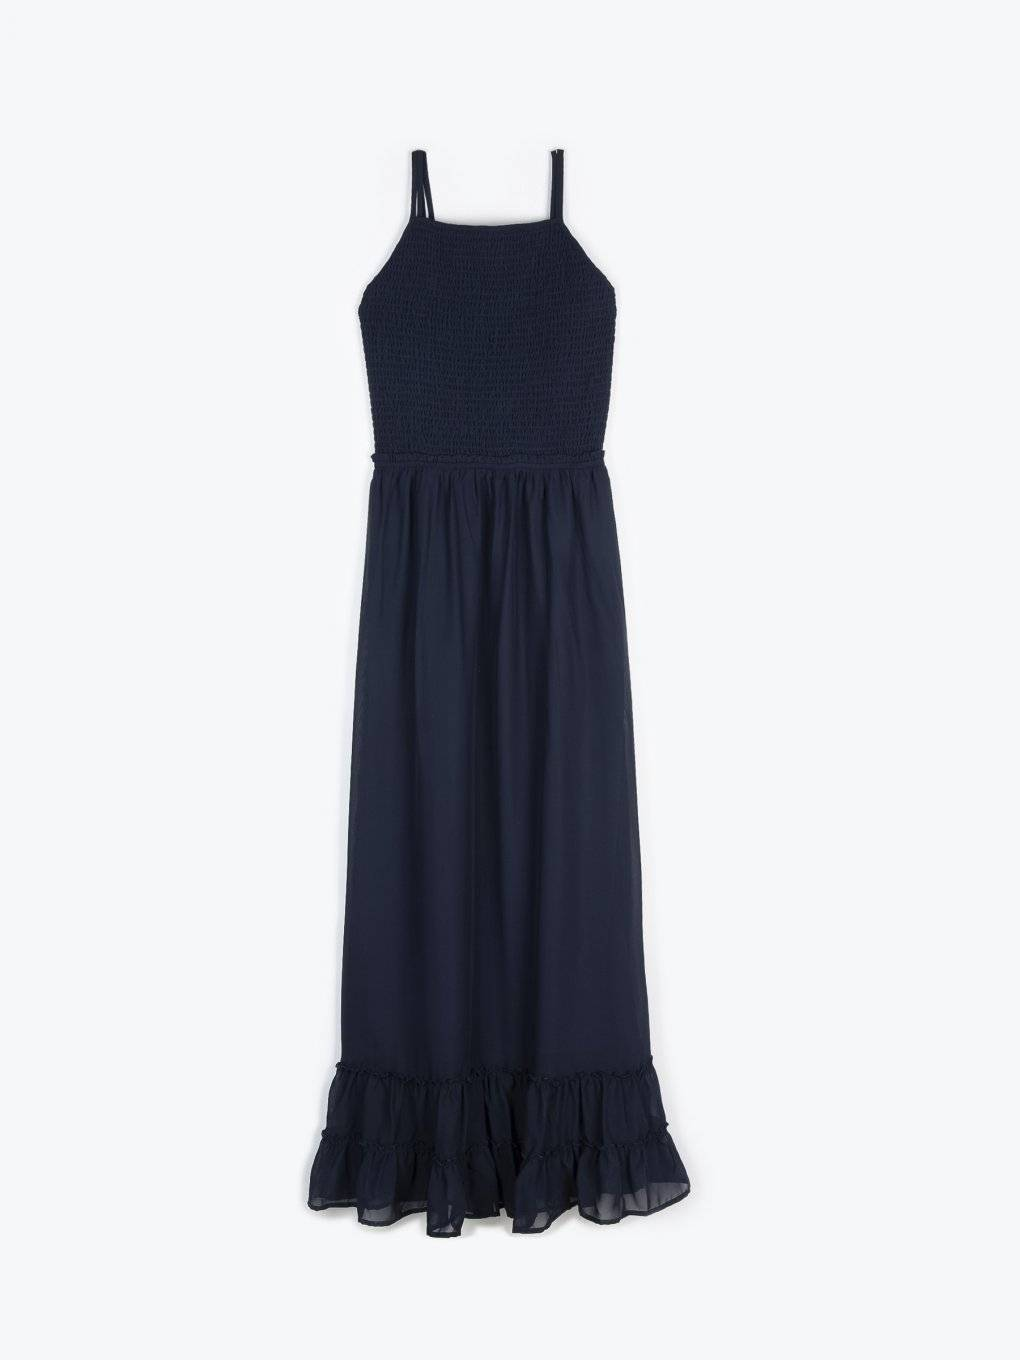 Chiffon dress with open back detail